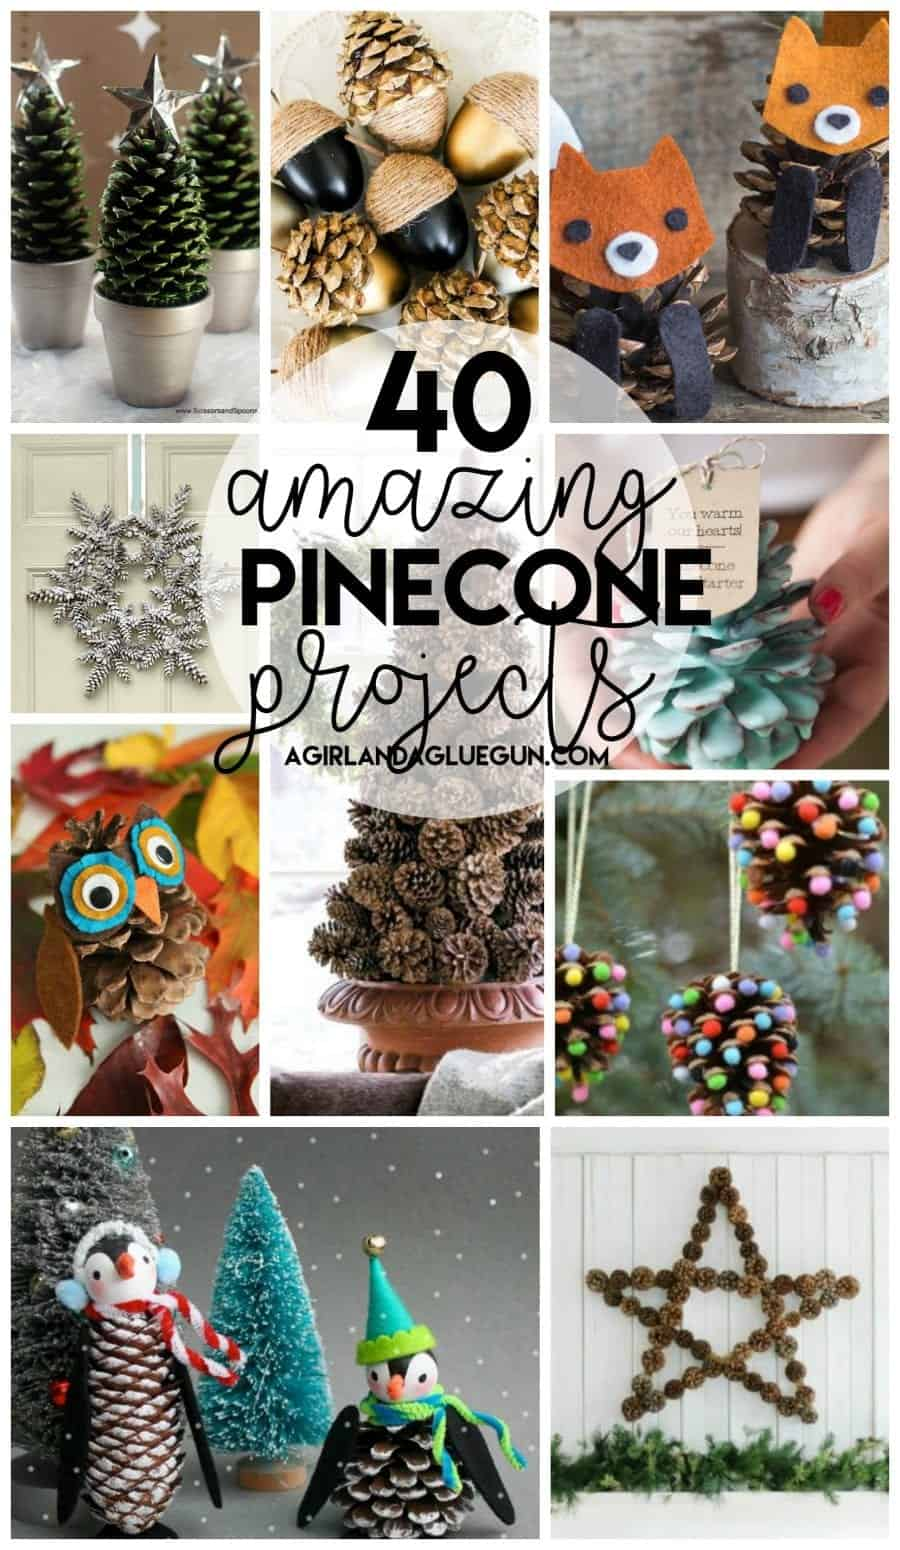 40-amazing-pinecone-projects-from-a-girl-and-a-glue-gun